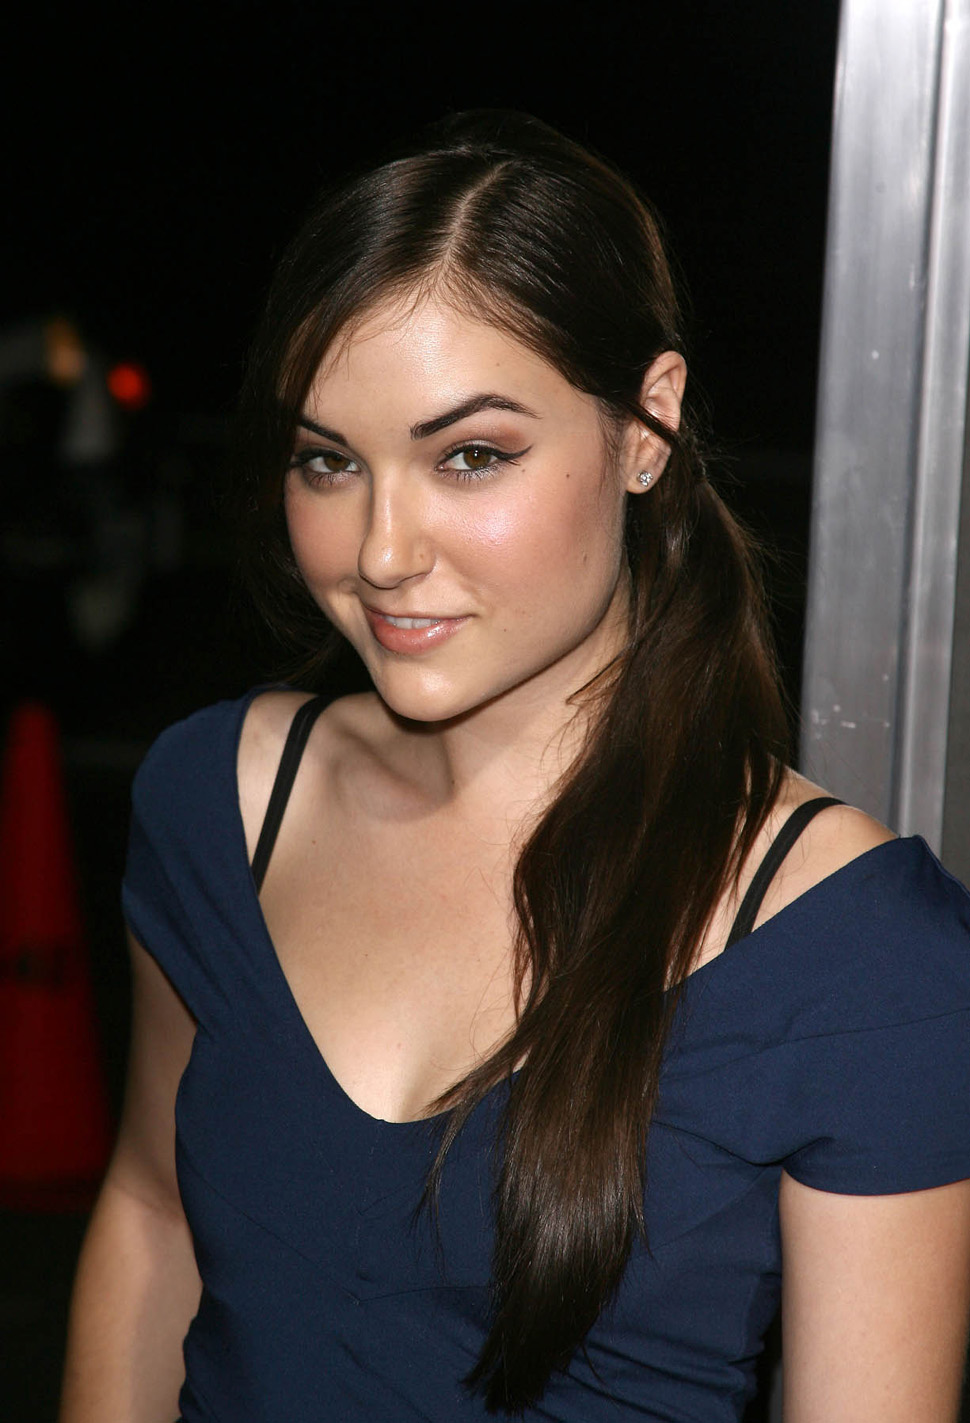 Lady Gaga Sasha Grey Looks So Sweet Innocent